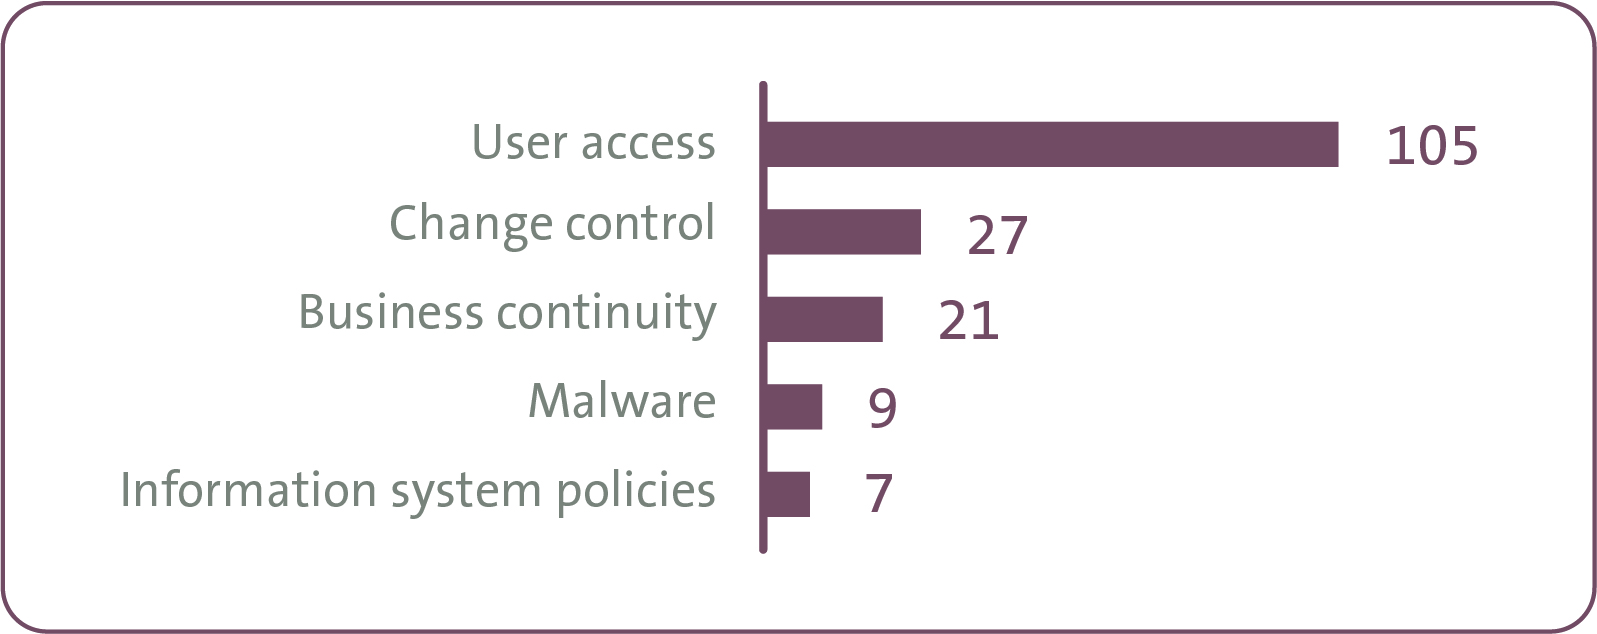 Figure 1: Recommendations for the year ending 30 June 2017 relating to data security.